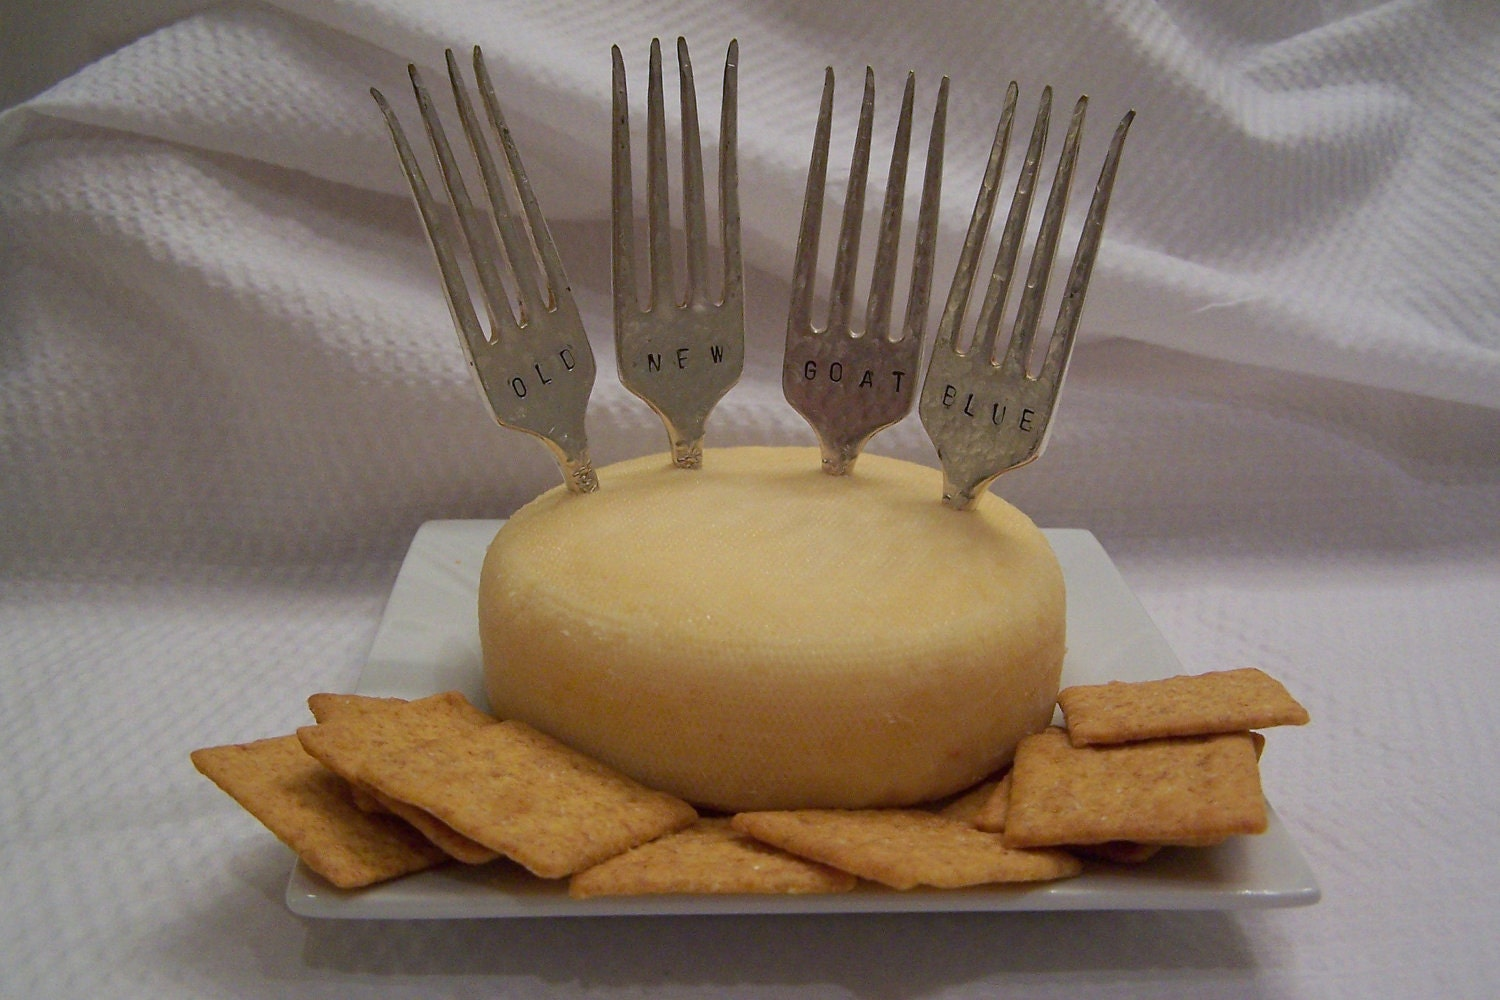 Cheese Markers - Old - New - Goat - Blue - Hostess Gift - Hand Stamped - Hand Hammered - Vintage Silverplate - Gift Basket - Under 20